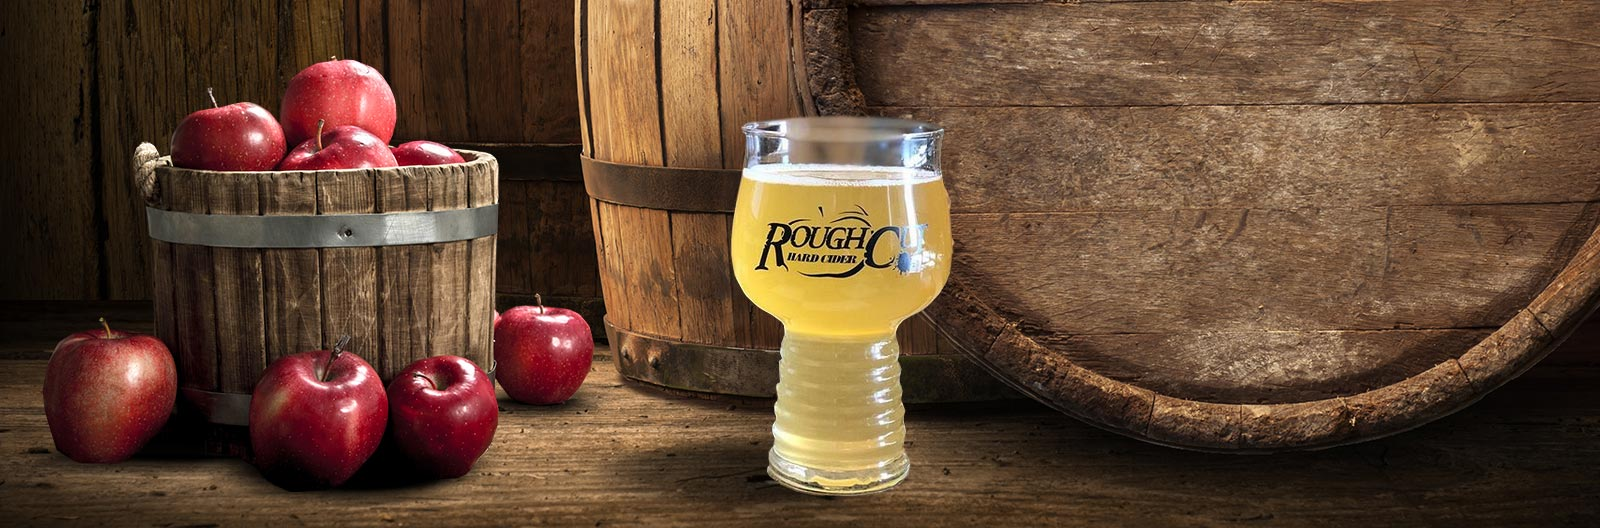 Rough Cut Cider House Kalispell MT